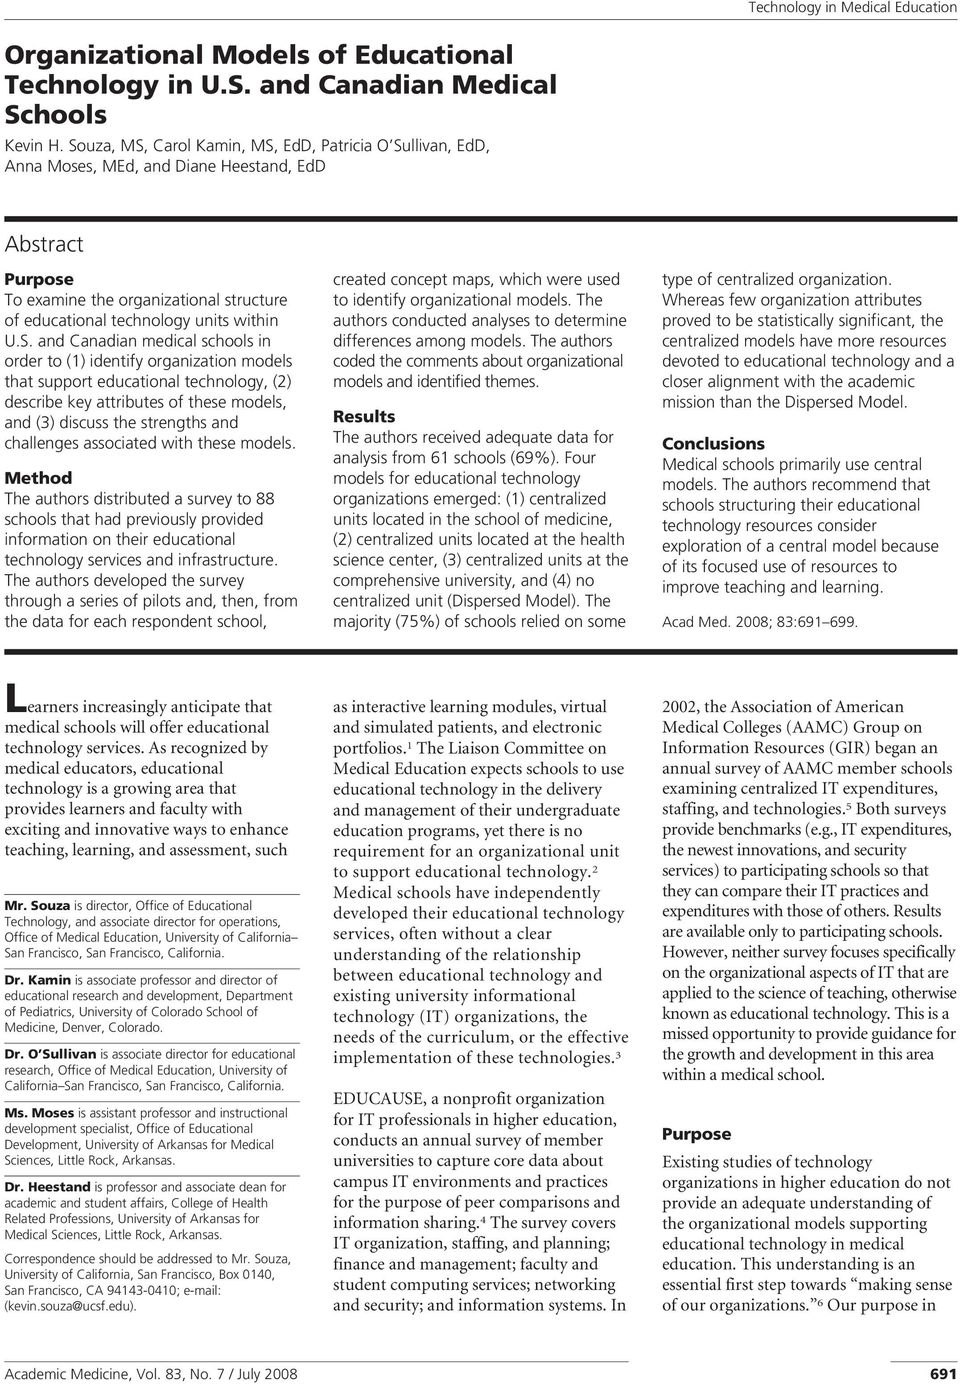 U.S. and Canadian medical schools in order to (1) identify organization models that support educational technology, (2) describe key attributes of these models, and (3) discuss the strengths and